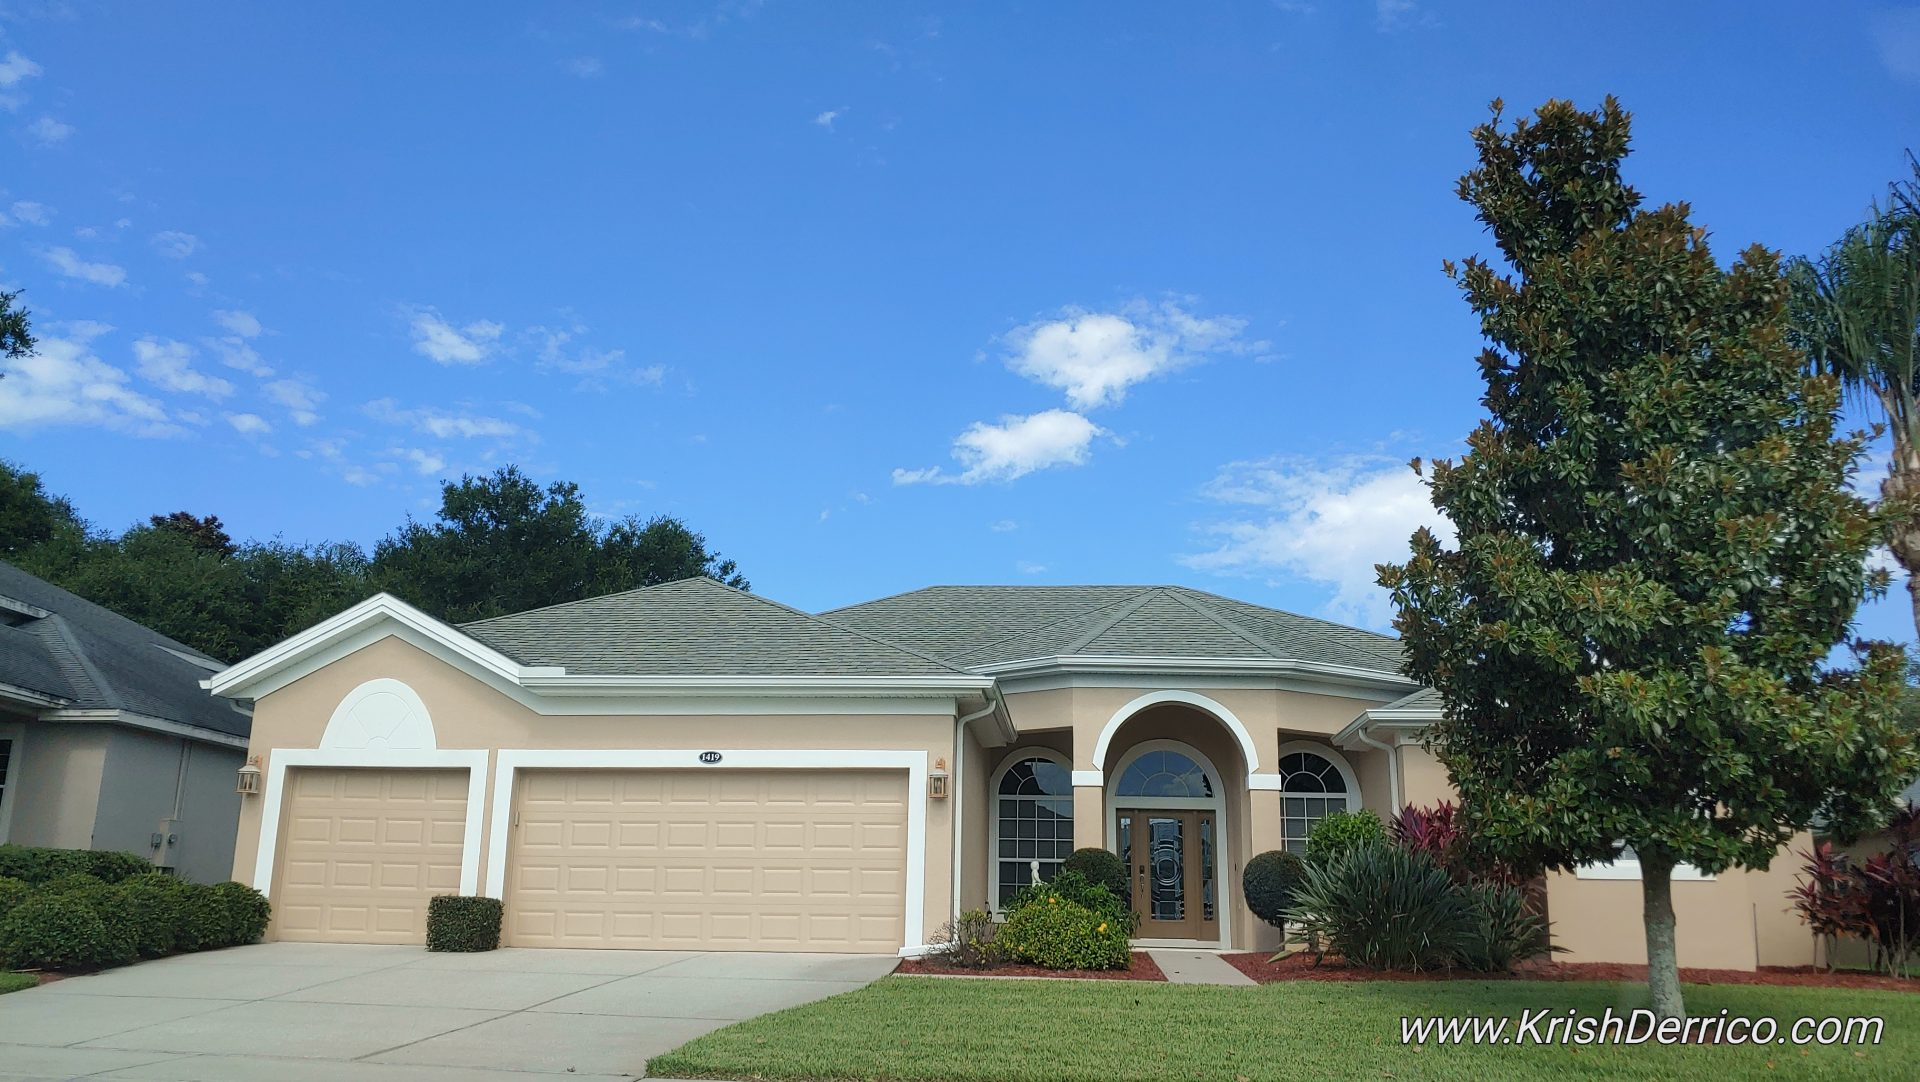 home values in legends clermont fl